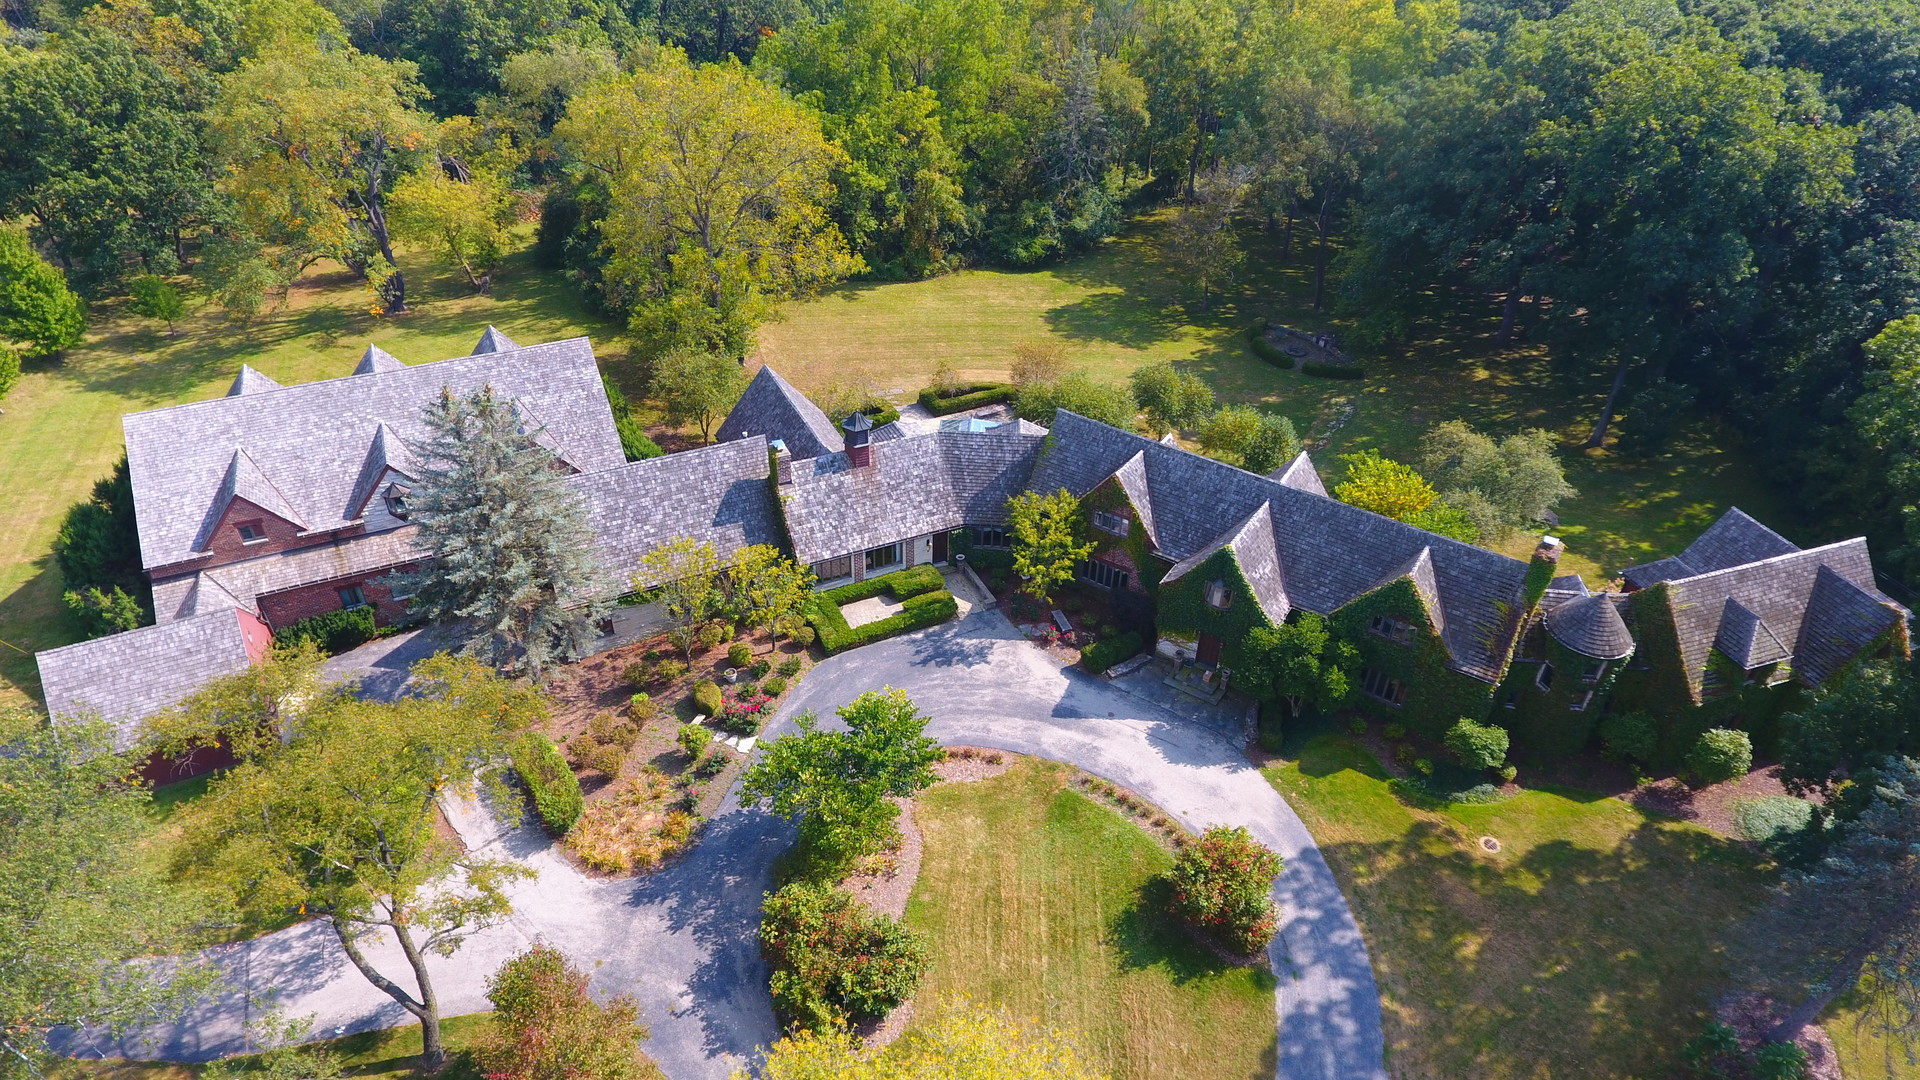 541 Merri Oaks Road, Barrington Hills, Illinois 60010